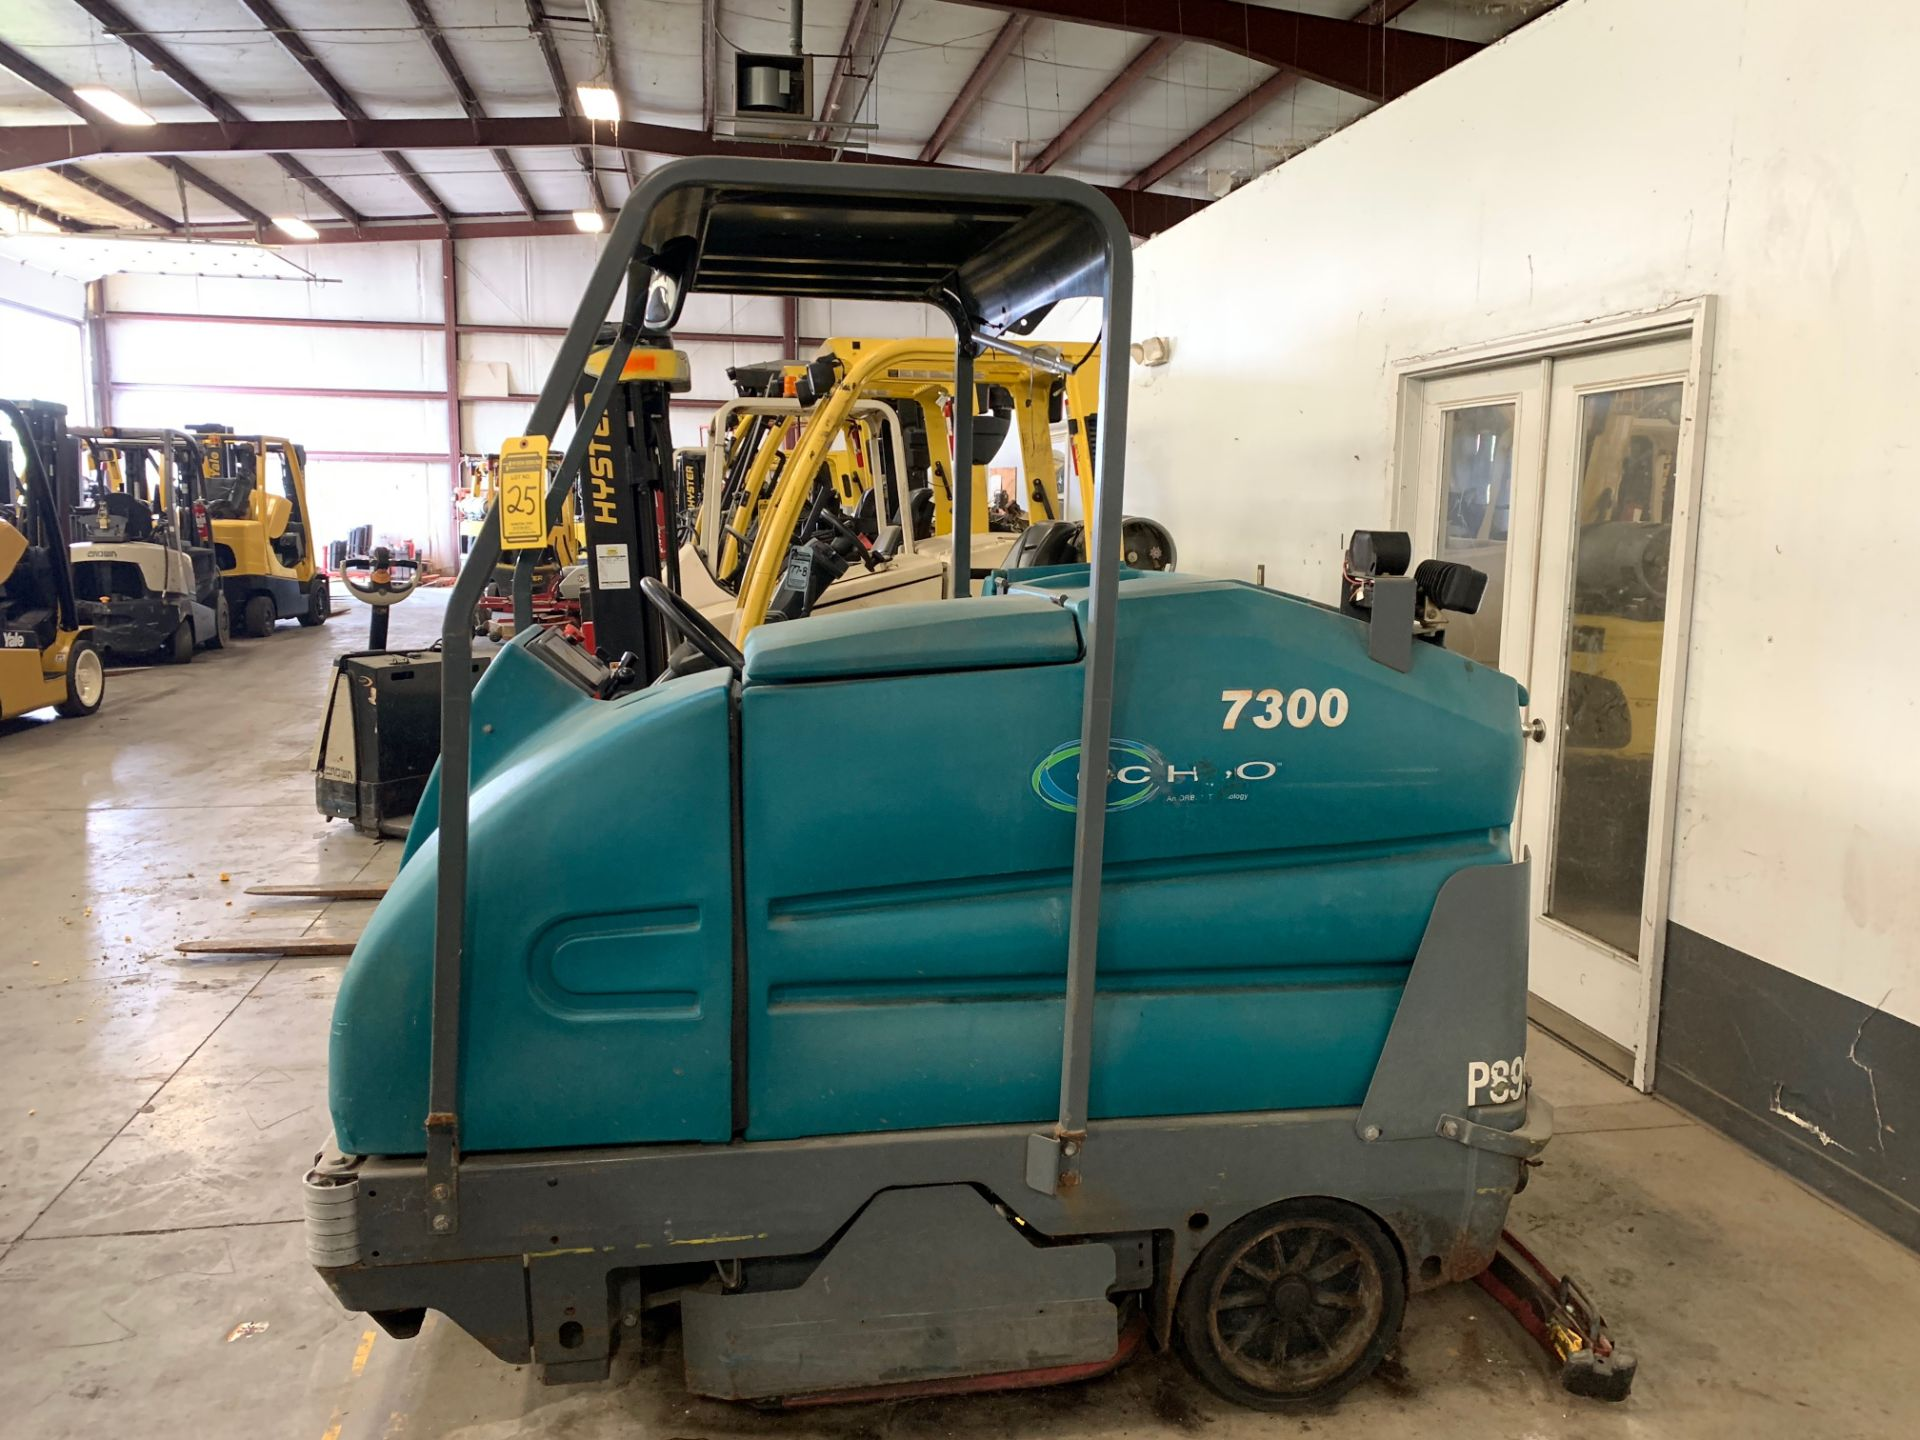 Lot 25 - 2011 TENNANT ELECTRIC FLOOR SWEEPER/SCRUBBER, MODEL: 7300, S/N: 7300-5517, 36-VOLT, 508 HOURS